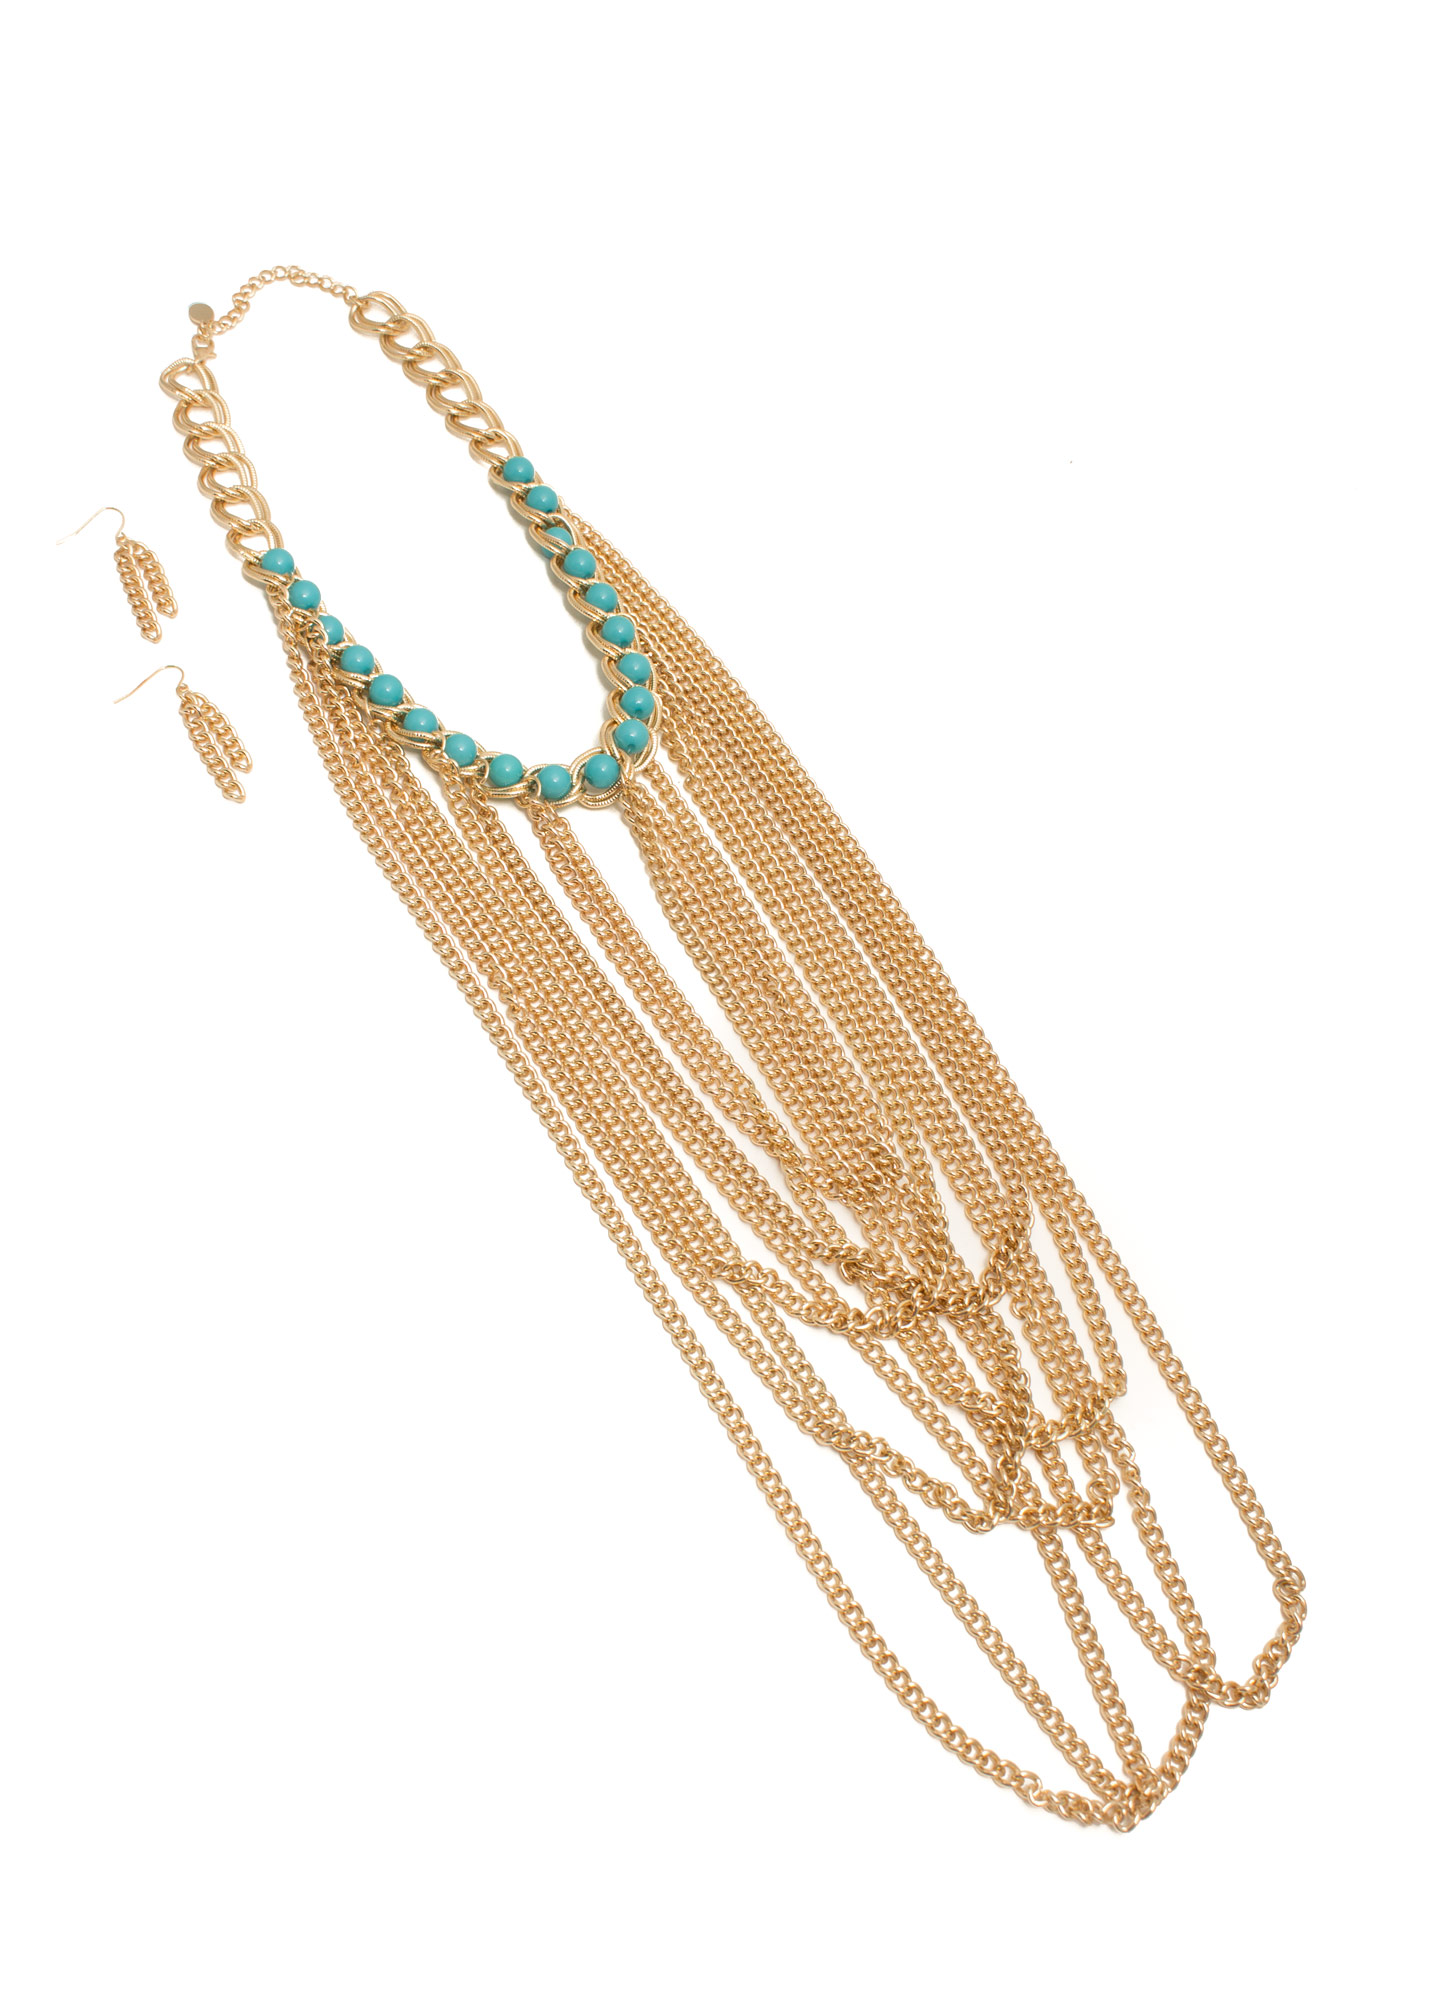 Draped 'N Looped Chain Link Necklace Set GOLDTURQ